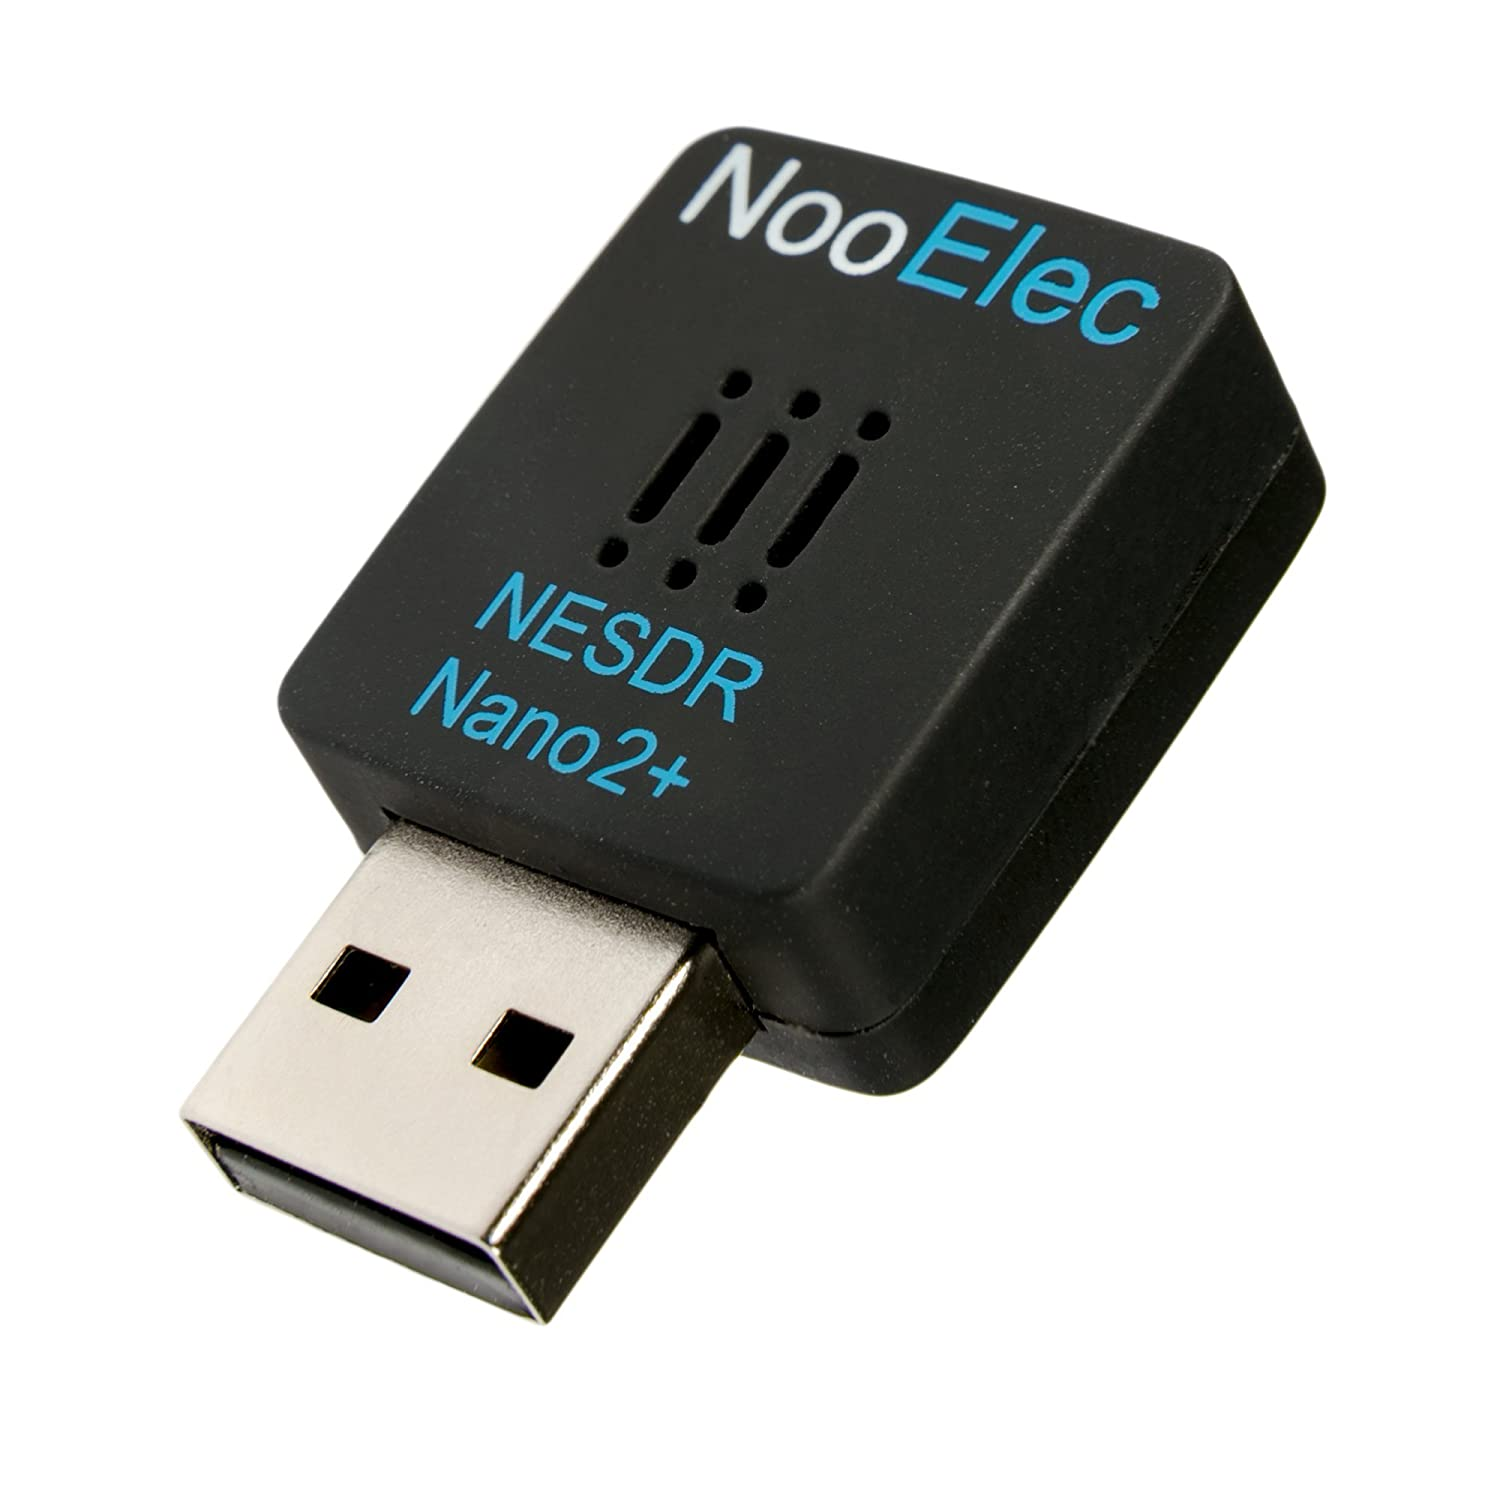 NooElec NESDR Nano 2+ Tiny Black RTL-SDR USB Set (RTL2832U + R820T2) with Ultra-Low Phase Noise 0.5PPM TCXO, MCX Antenna and Remote Control; Software Defined Radio, DVB-T and ADS-B Compatible, ESD Safe NooElec Inc.